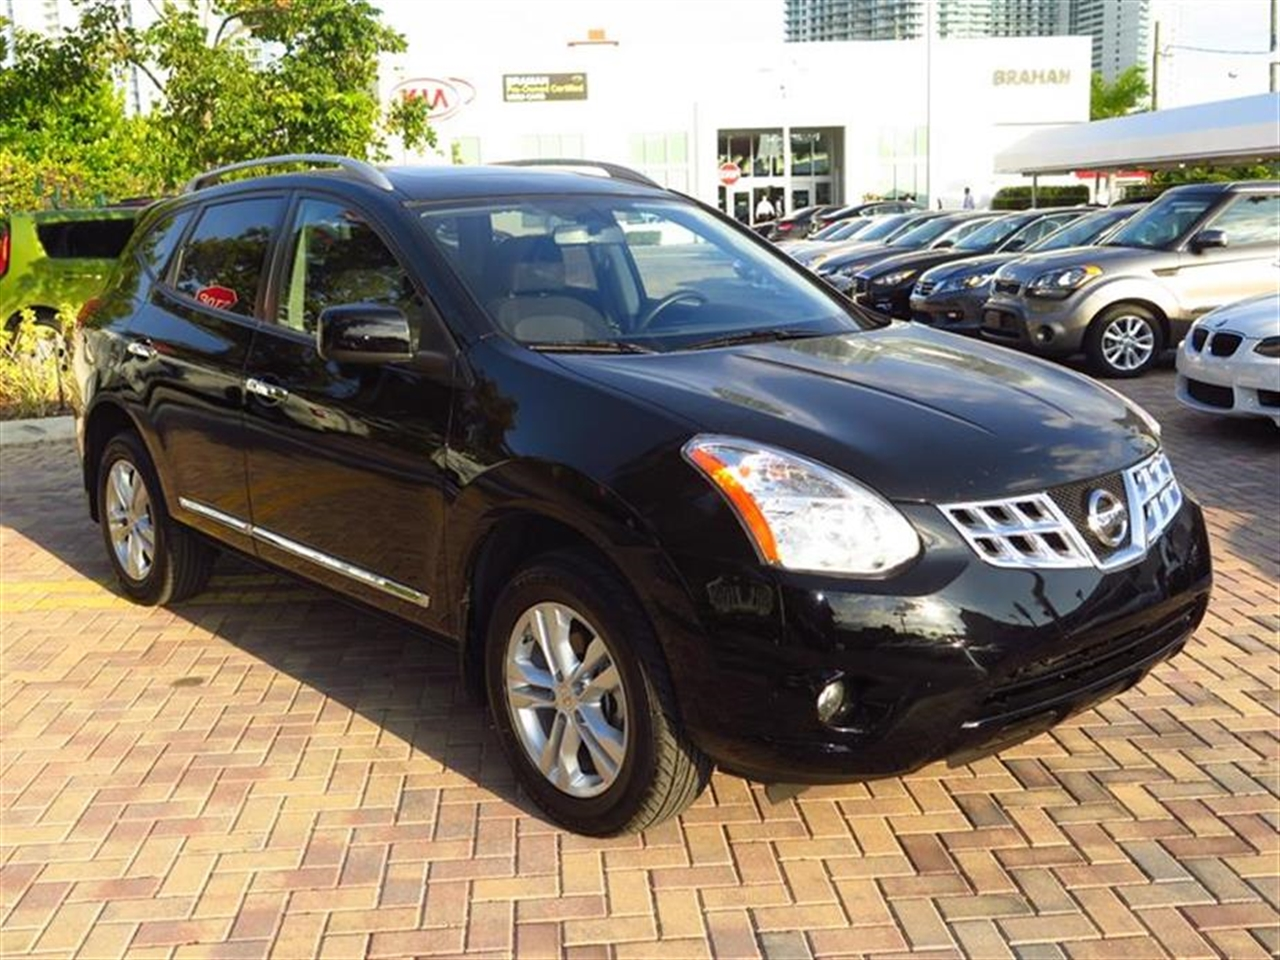 2013 NISSAN ROGUE FWD 4dr SV 28228 miles 2 12-volt pwr outlets 4 cargo area tie-down hooks 6